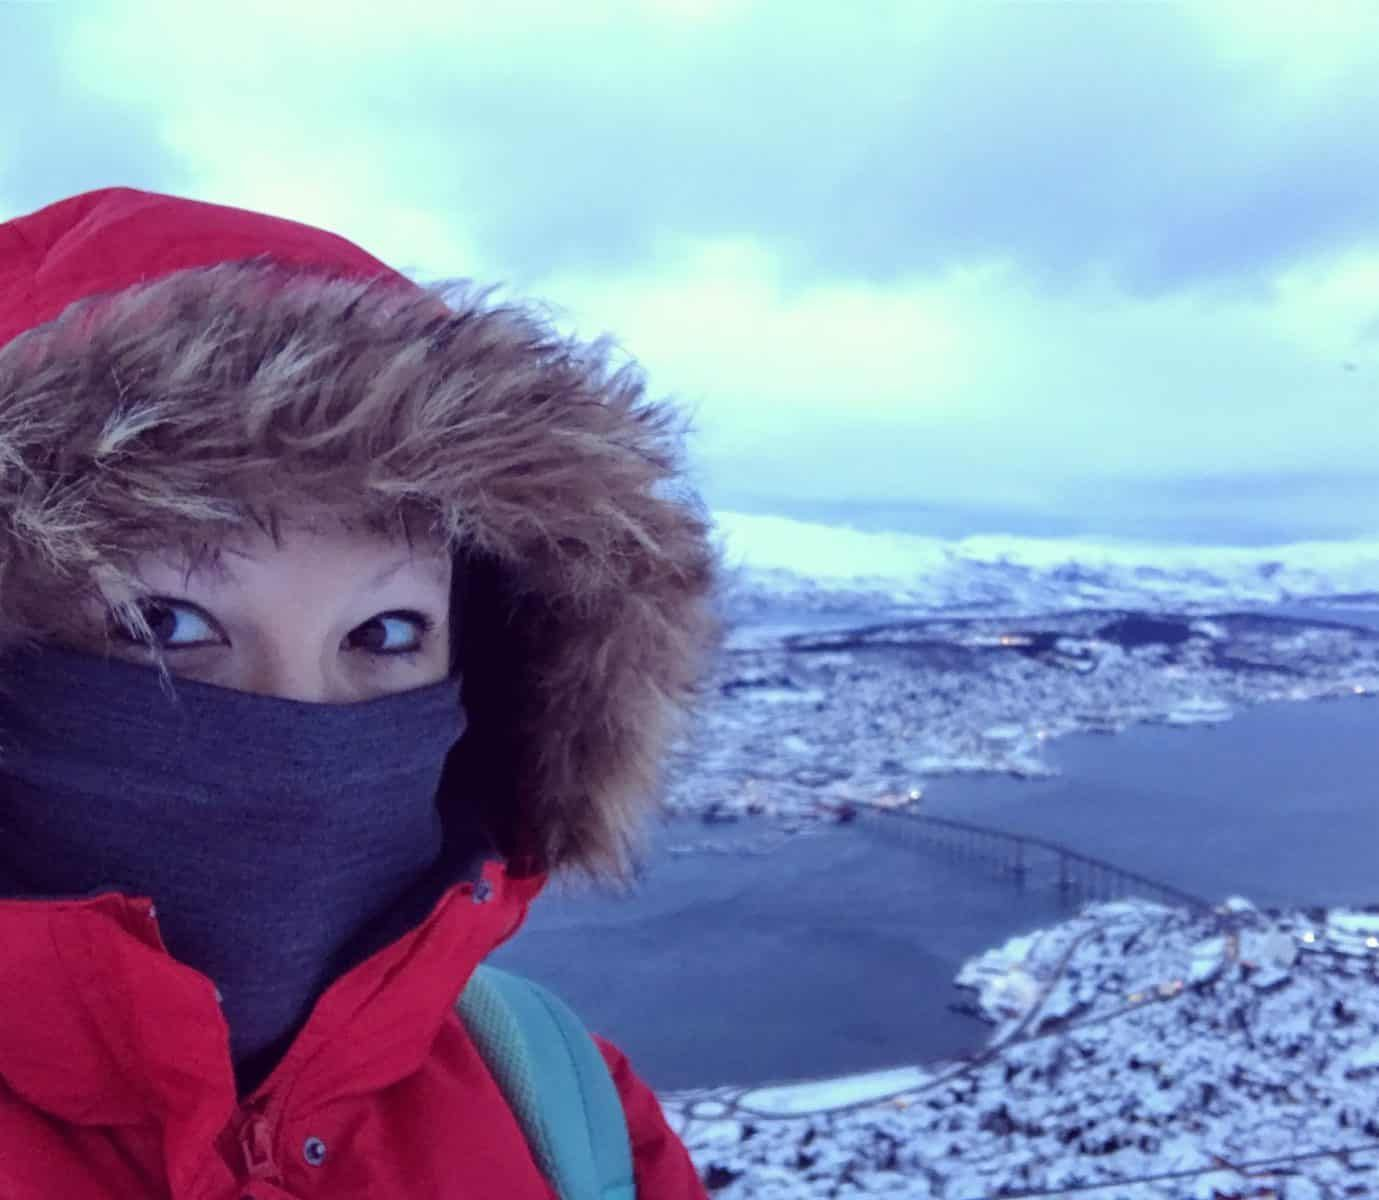 The Ultimate Packing List of Arctic Wear #ultimatepackinglist The Ultimate Packing List of Arctic Wear | One Girl, Whole World #ultimatepackinglist The Ultimate Packing List of Arctic Wear #ultimatepackinglist The Ultimate Packing List of Arctic Wear | One Girl, Whole World #collegepackinglist